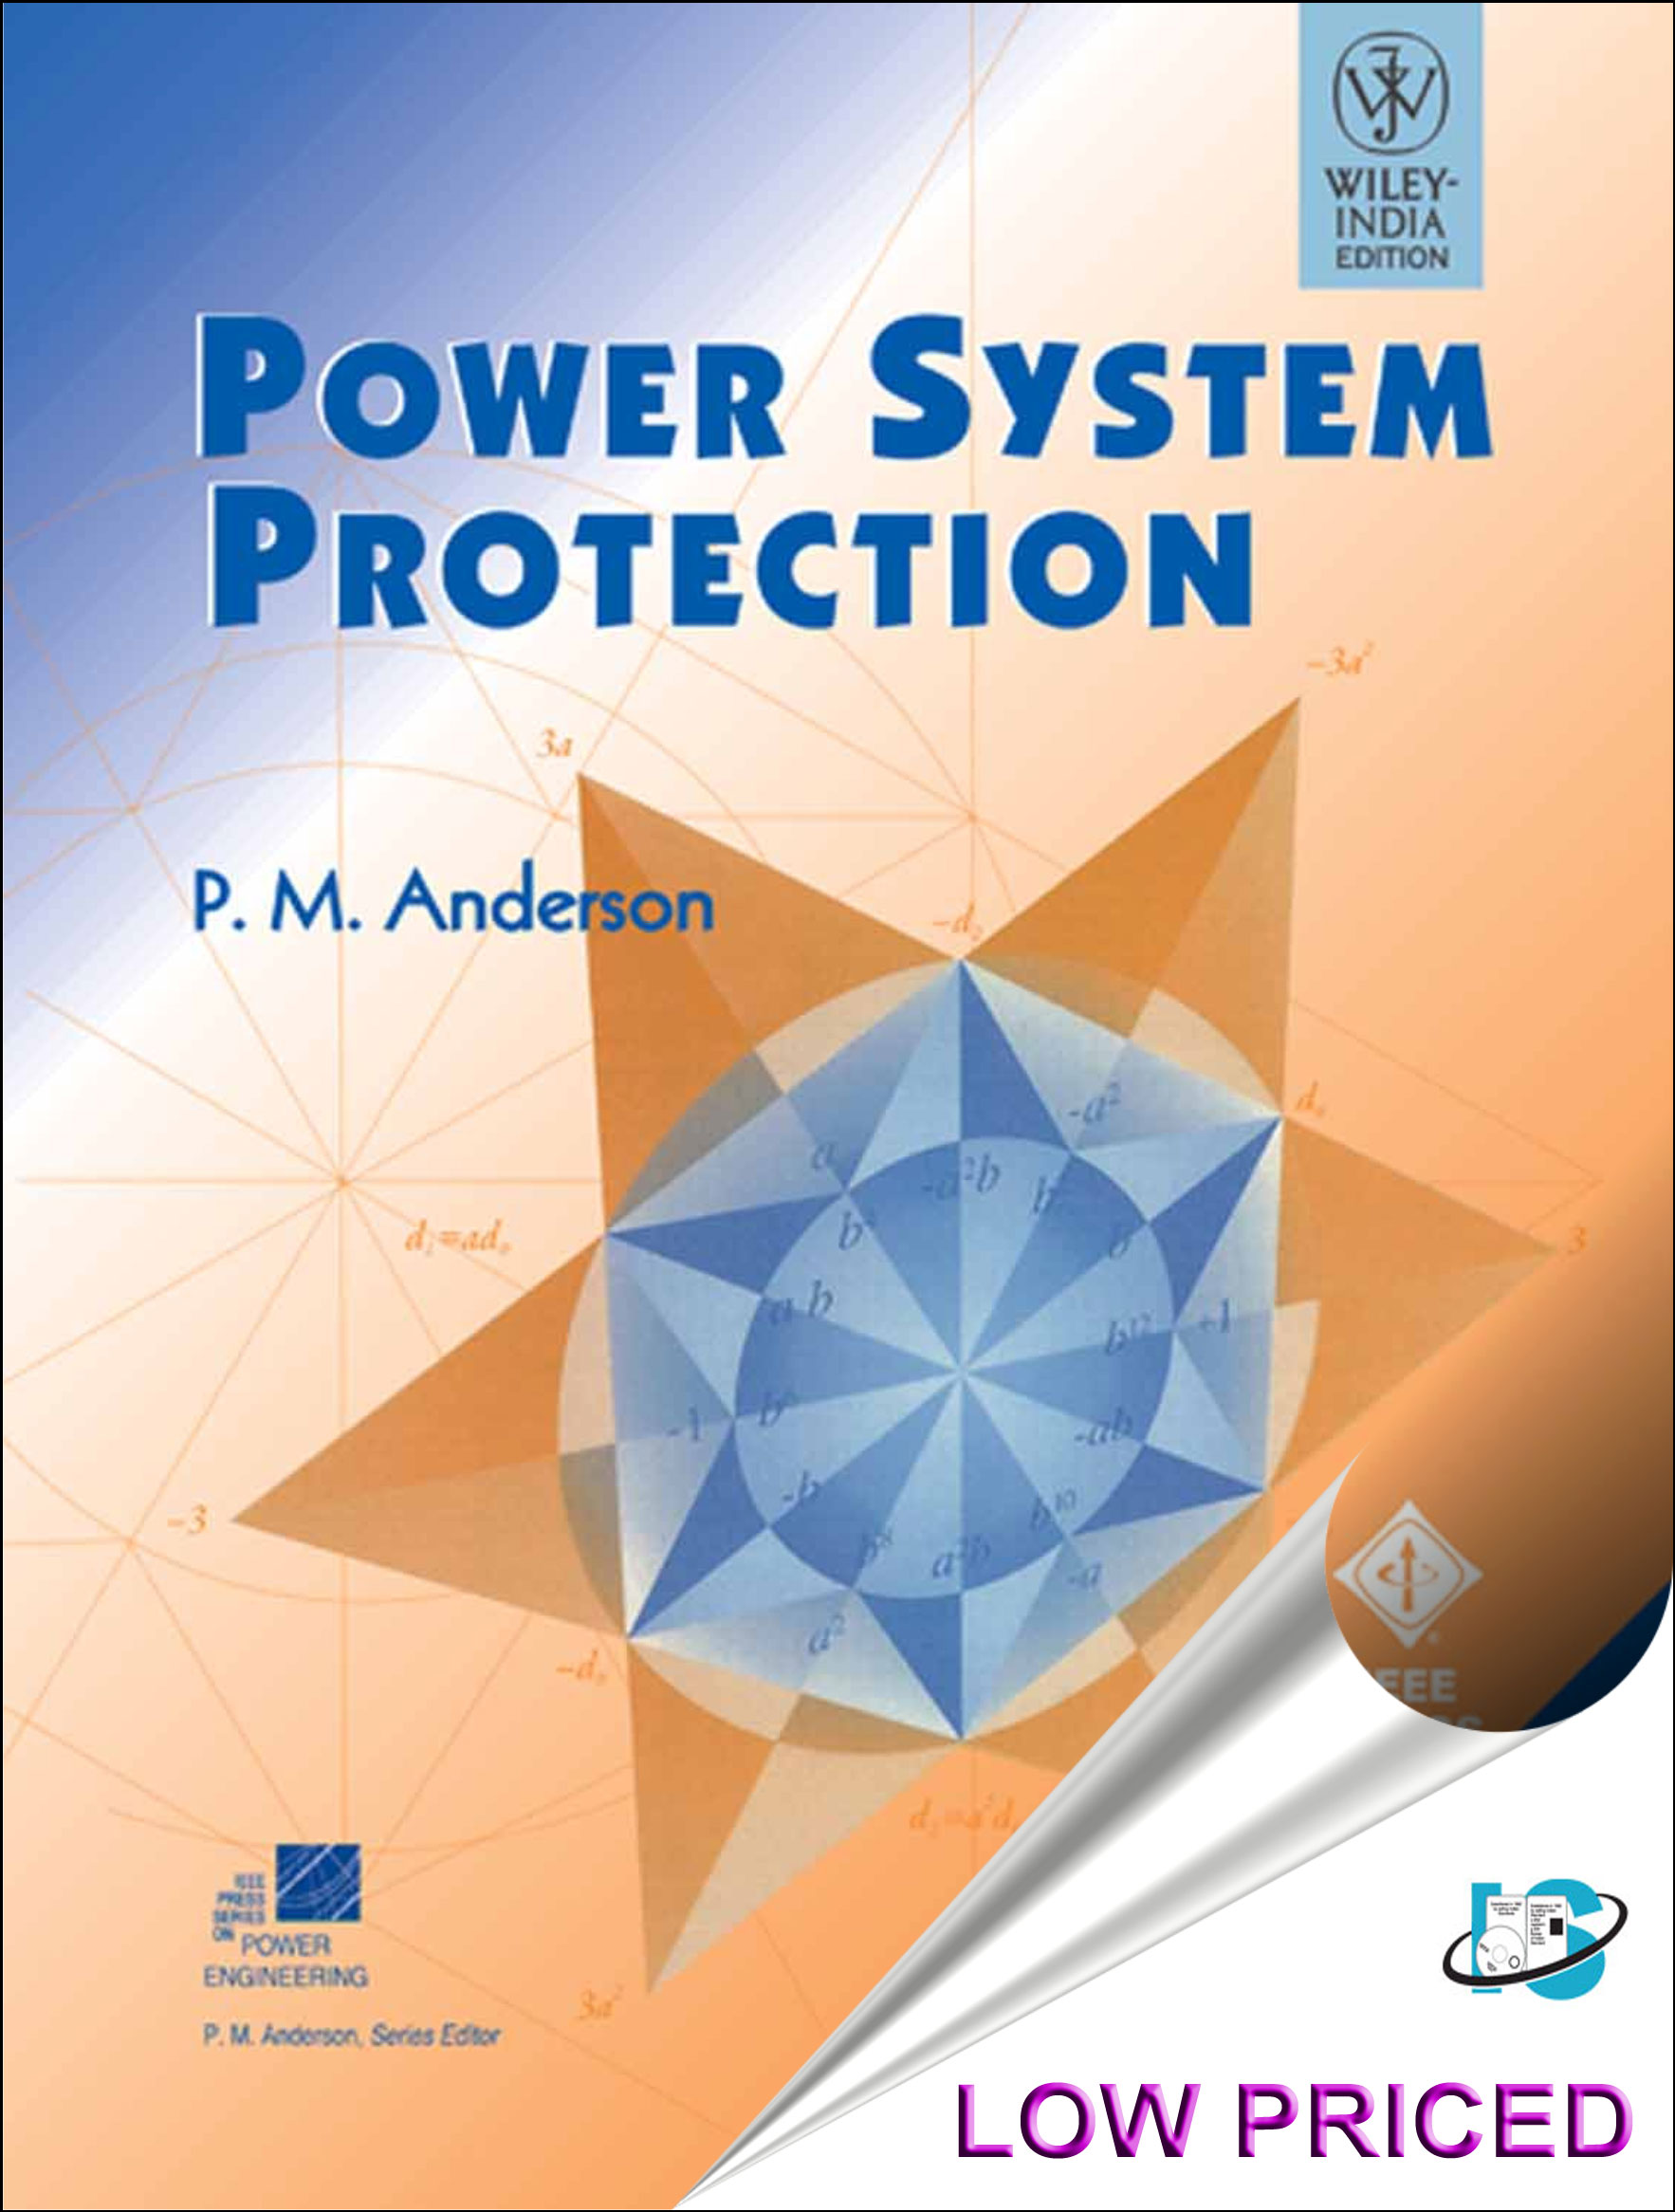 power system protection Chapter 6 (especially section 64 of the areva network protection and automation guide link to: se zocholl and dw smaha, current transformer concepts (this takes you to the sel web site, free registration may be required.